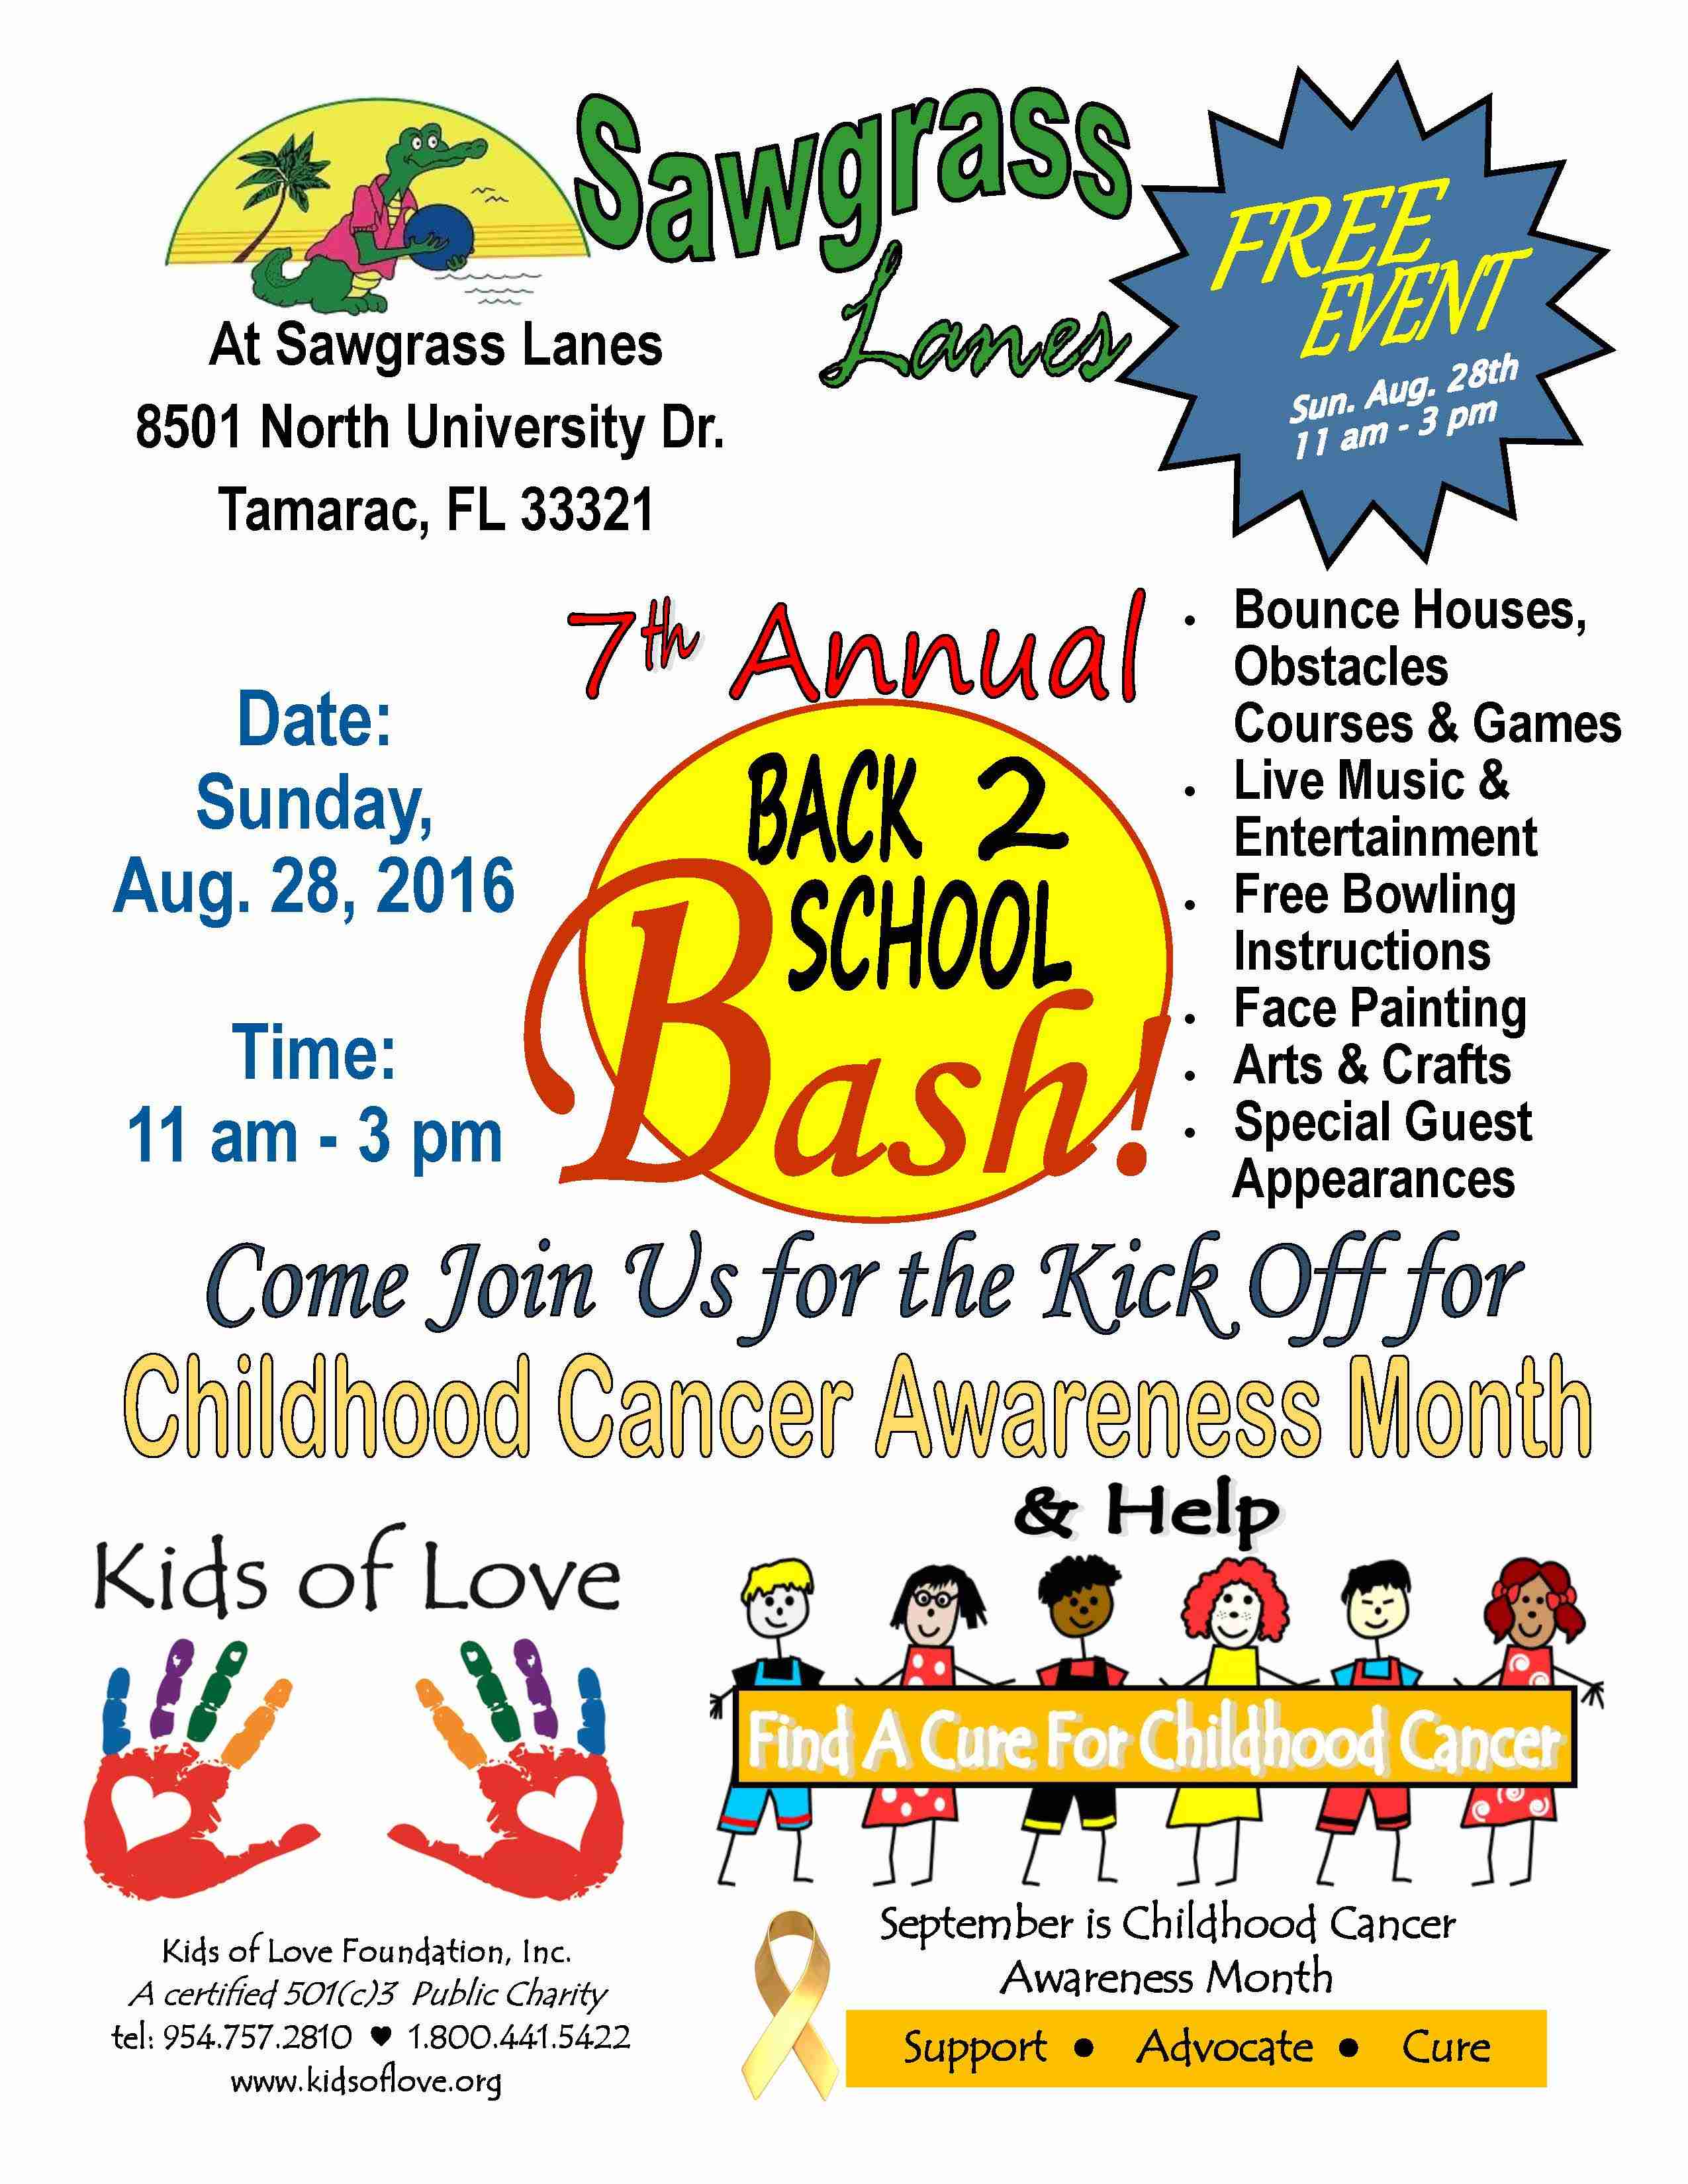 7th Annual Back 2 School Bash